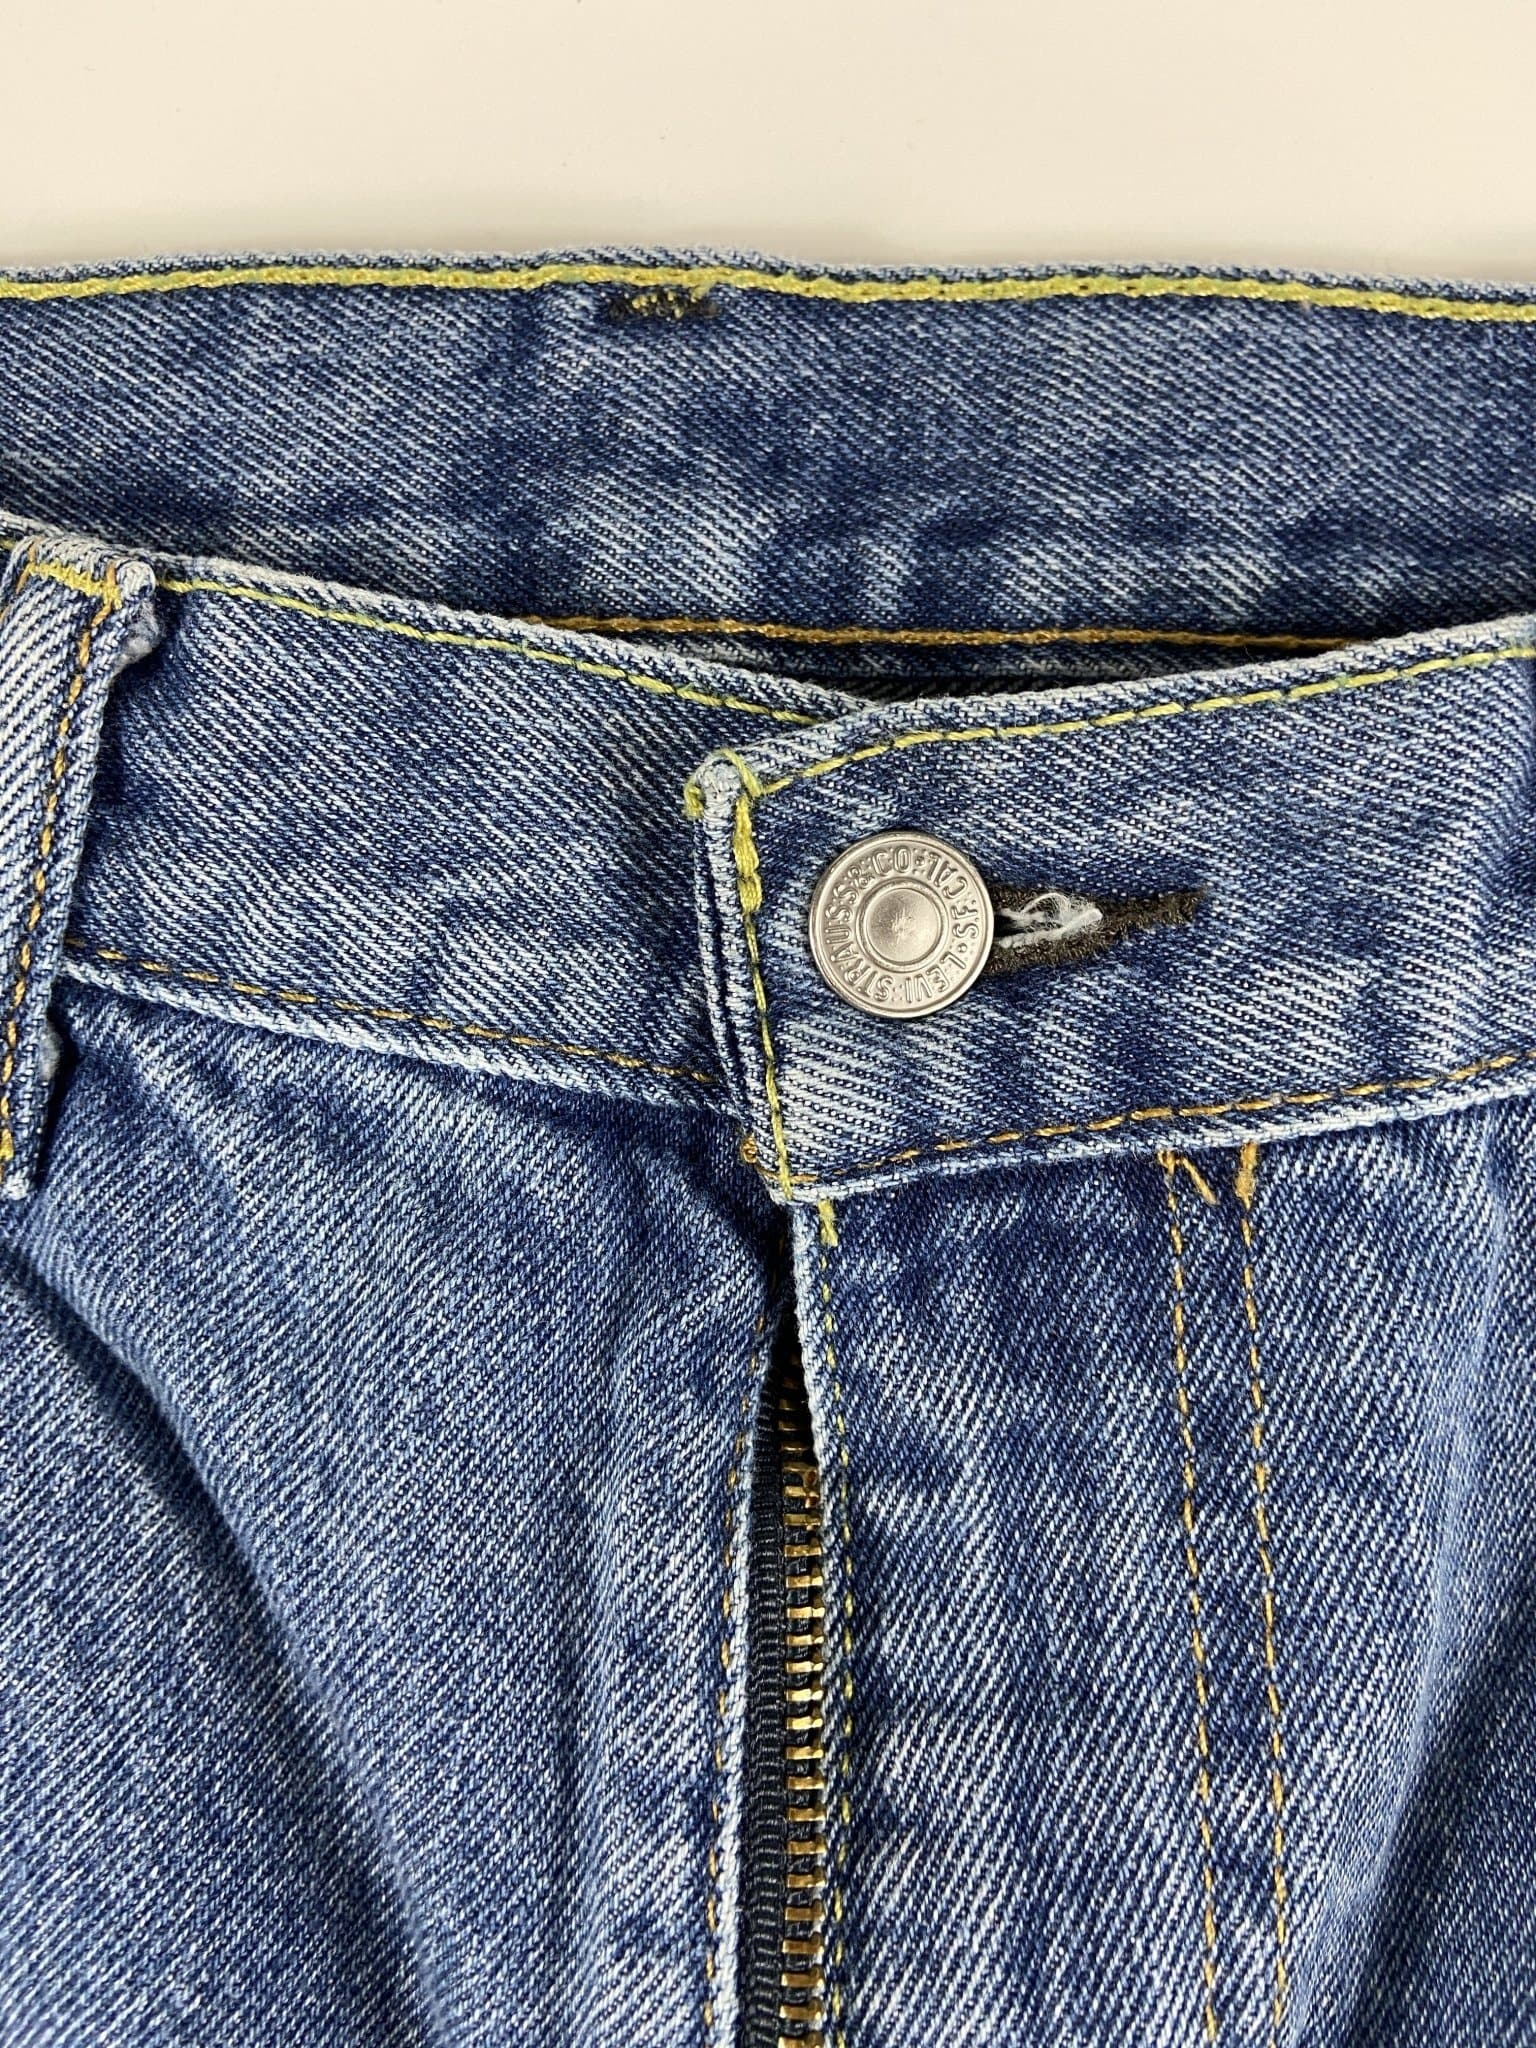 Vintage Levi's Classic 517 Jeans W32 L32 (QZ1) - Discounted Deals UK